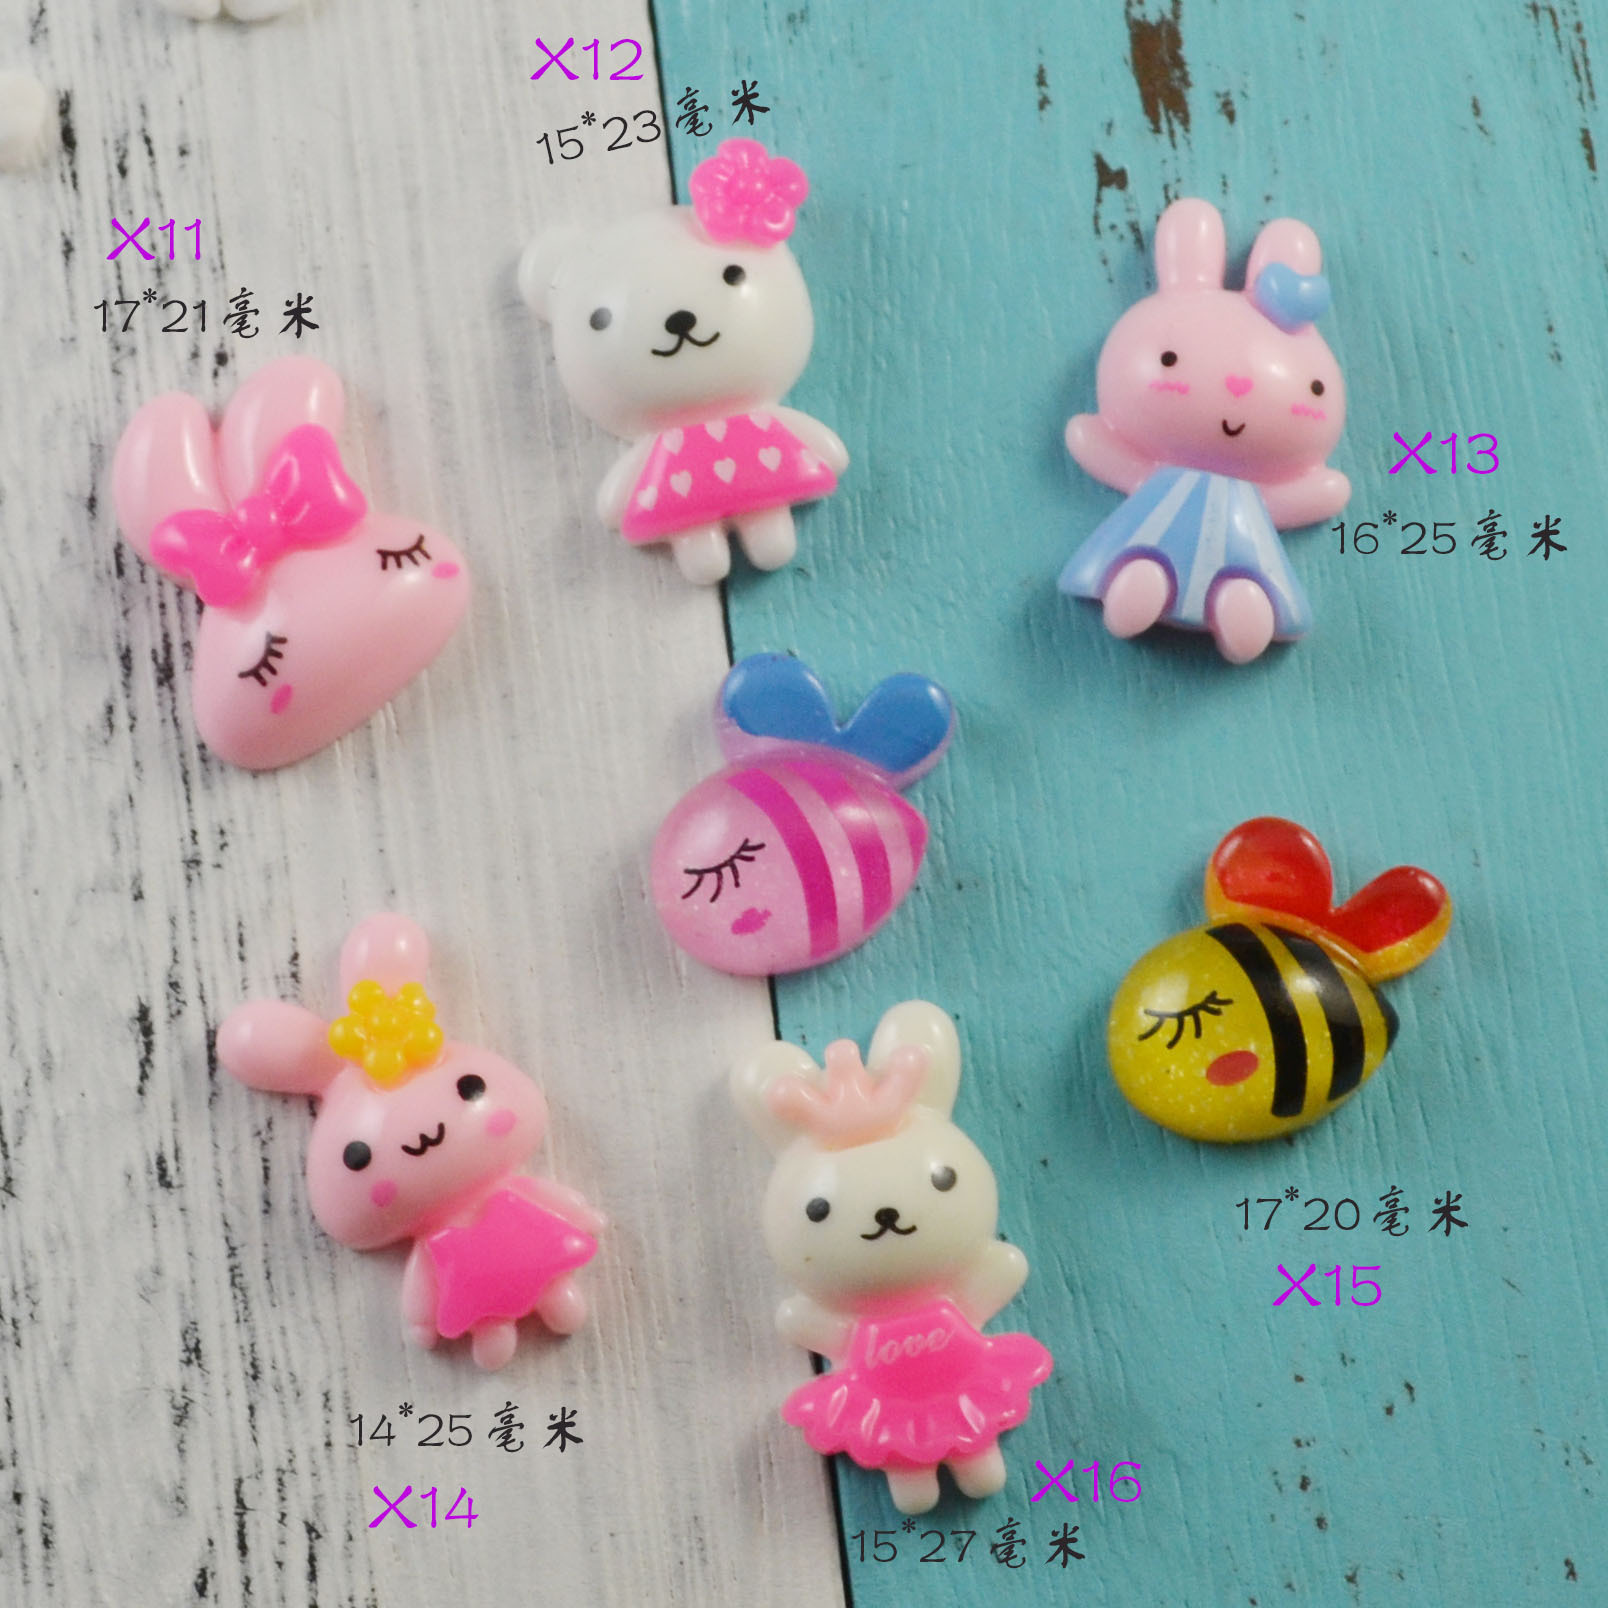 New Cute Rabbit Charms for Slime Filler Stress Relief DIY Polymer Addition Slime Accessories Toy Lizun Model Tool for Kids Toy E in Modeling Clay from Toys Hobbies